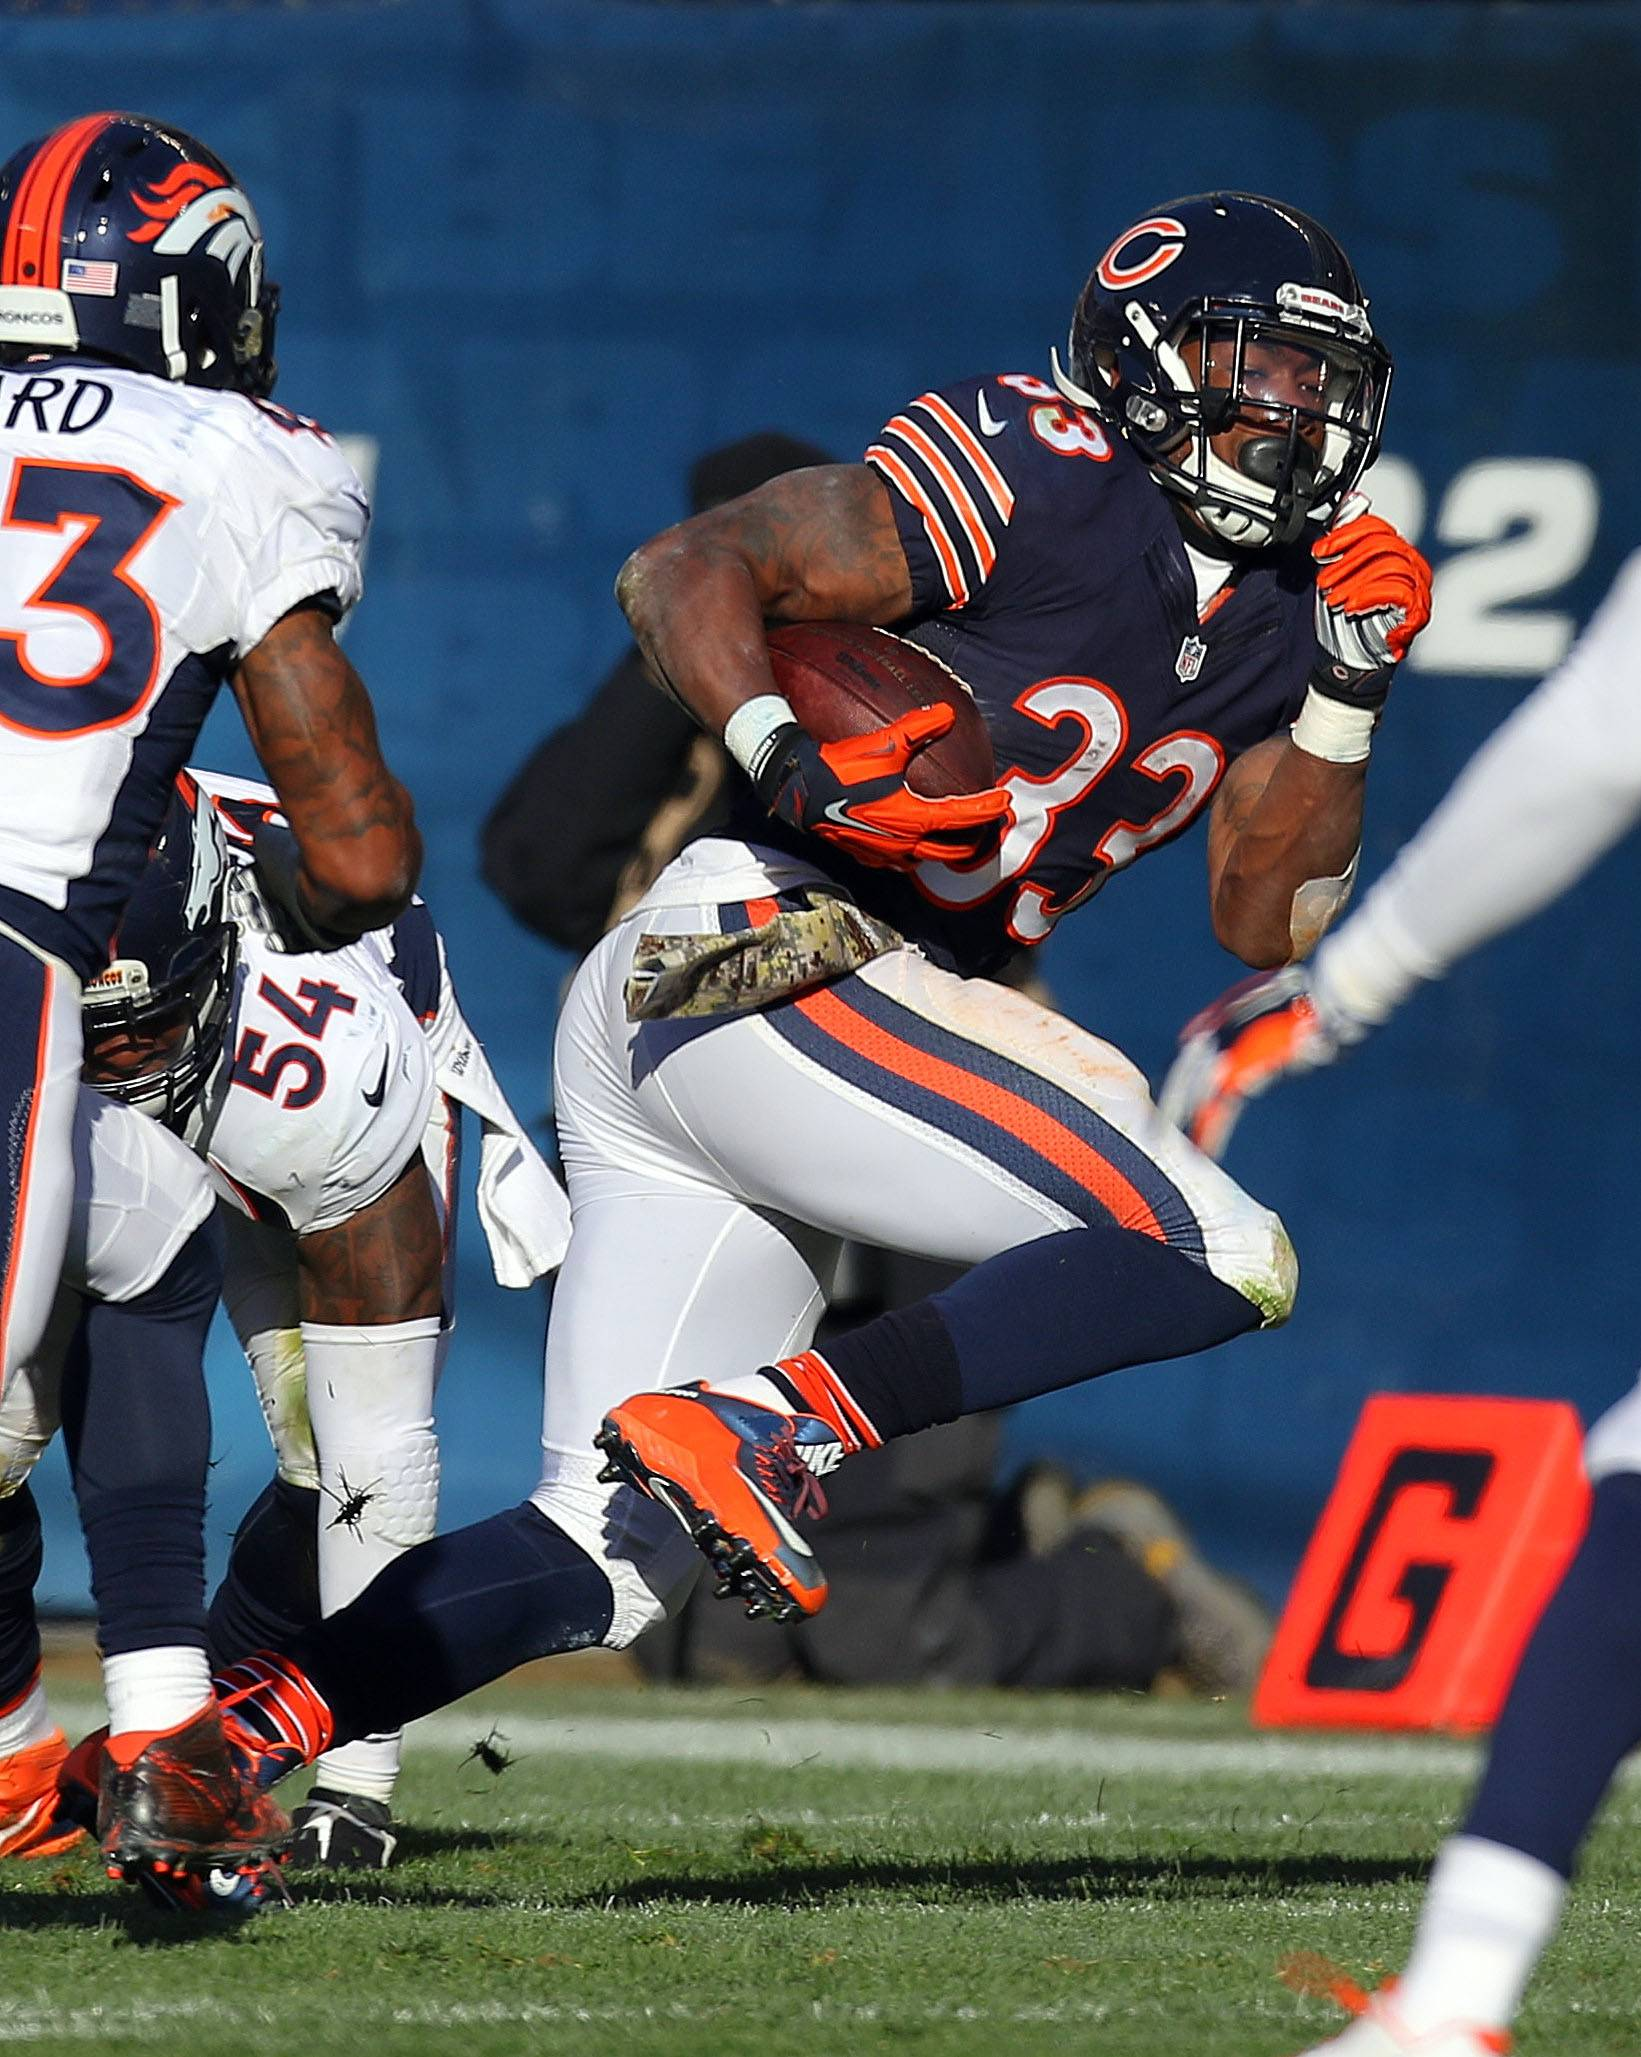 Fox keeps narrow focus for Chicago Bears